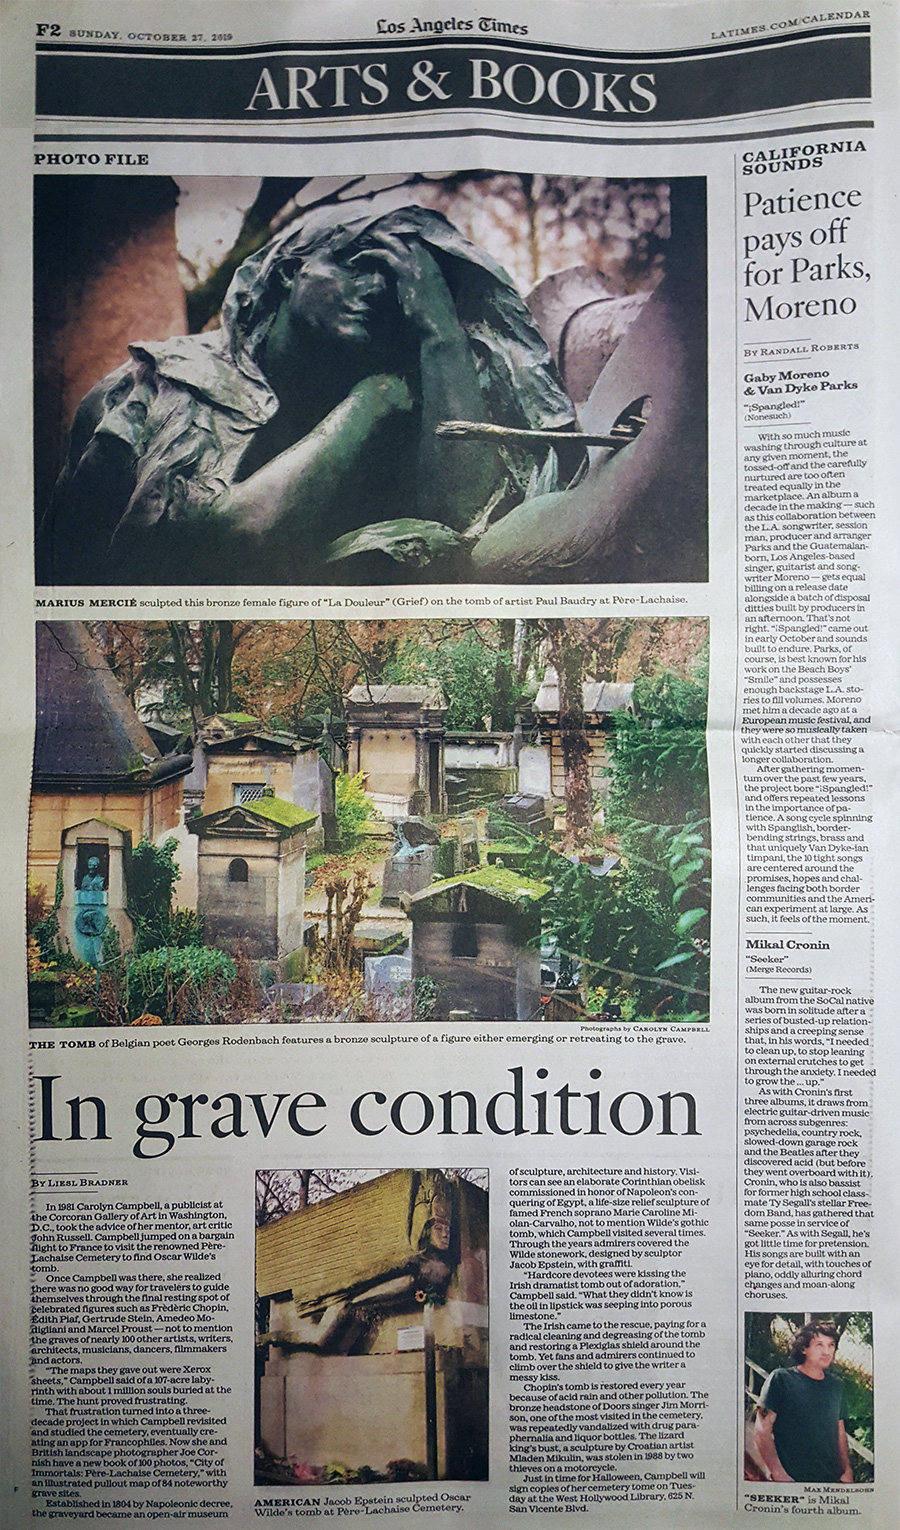 Los Angeles Times - Arts & Books: In Grave Condition by Liesl Bradner